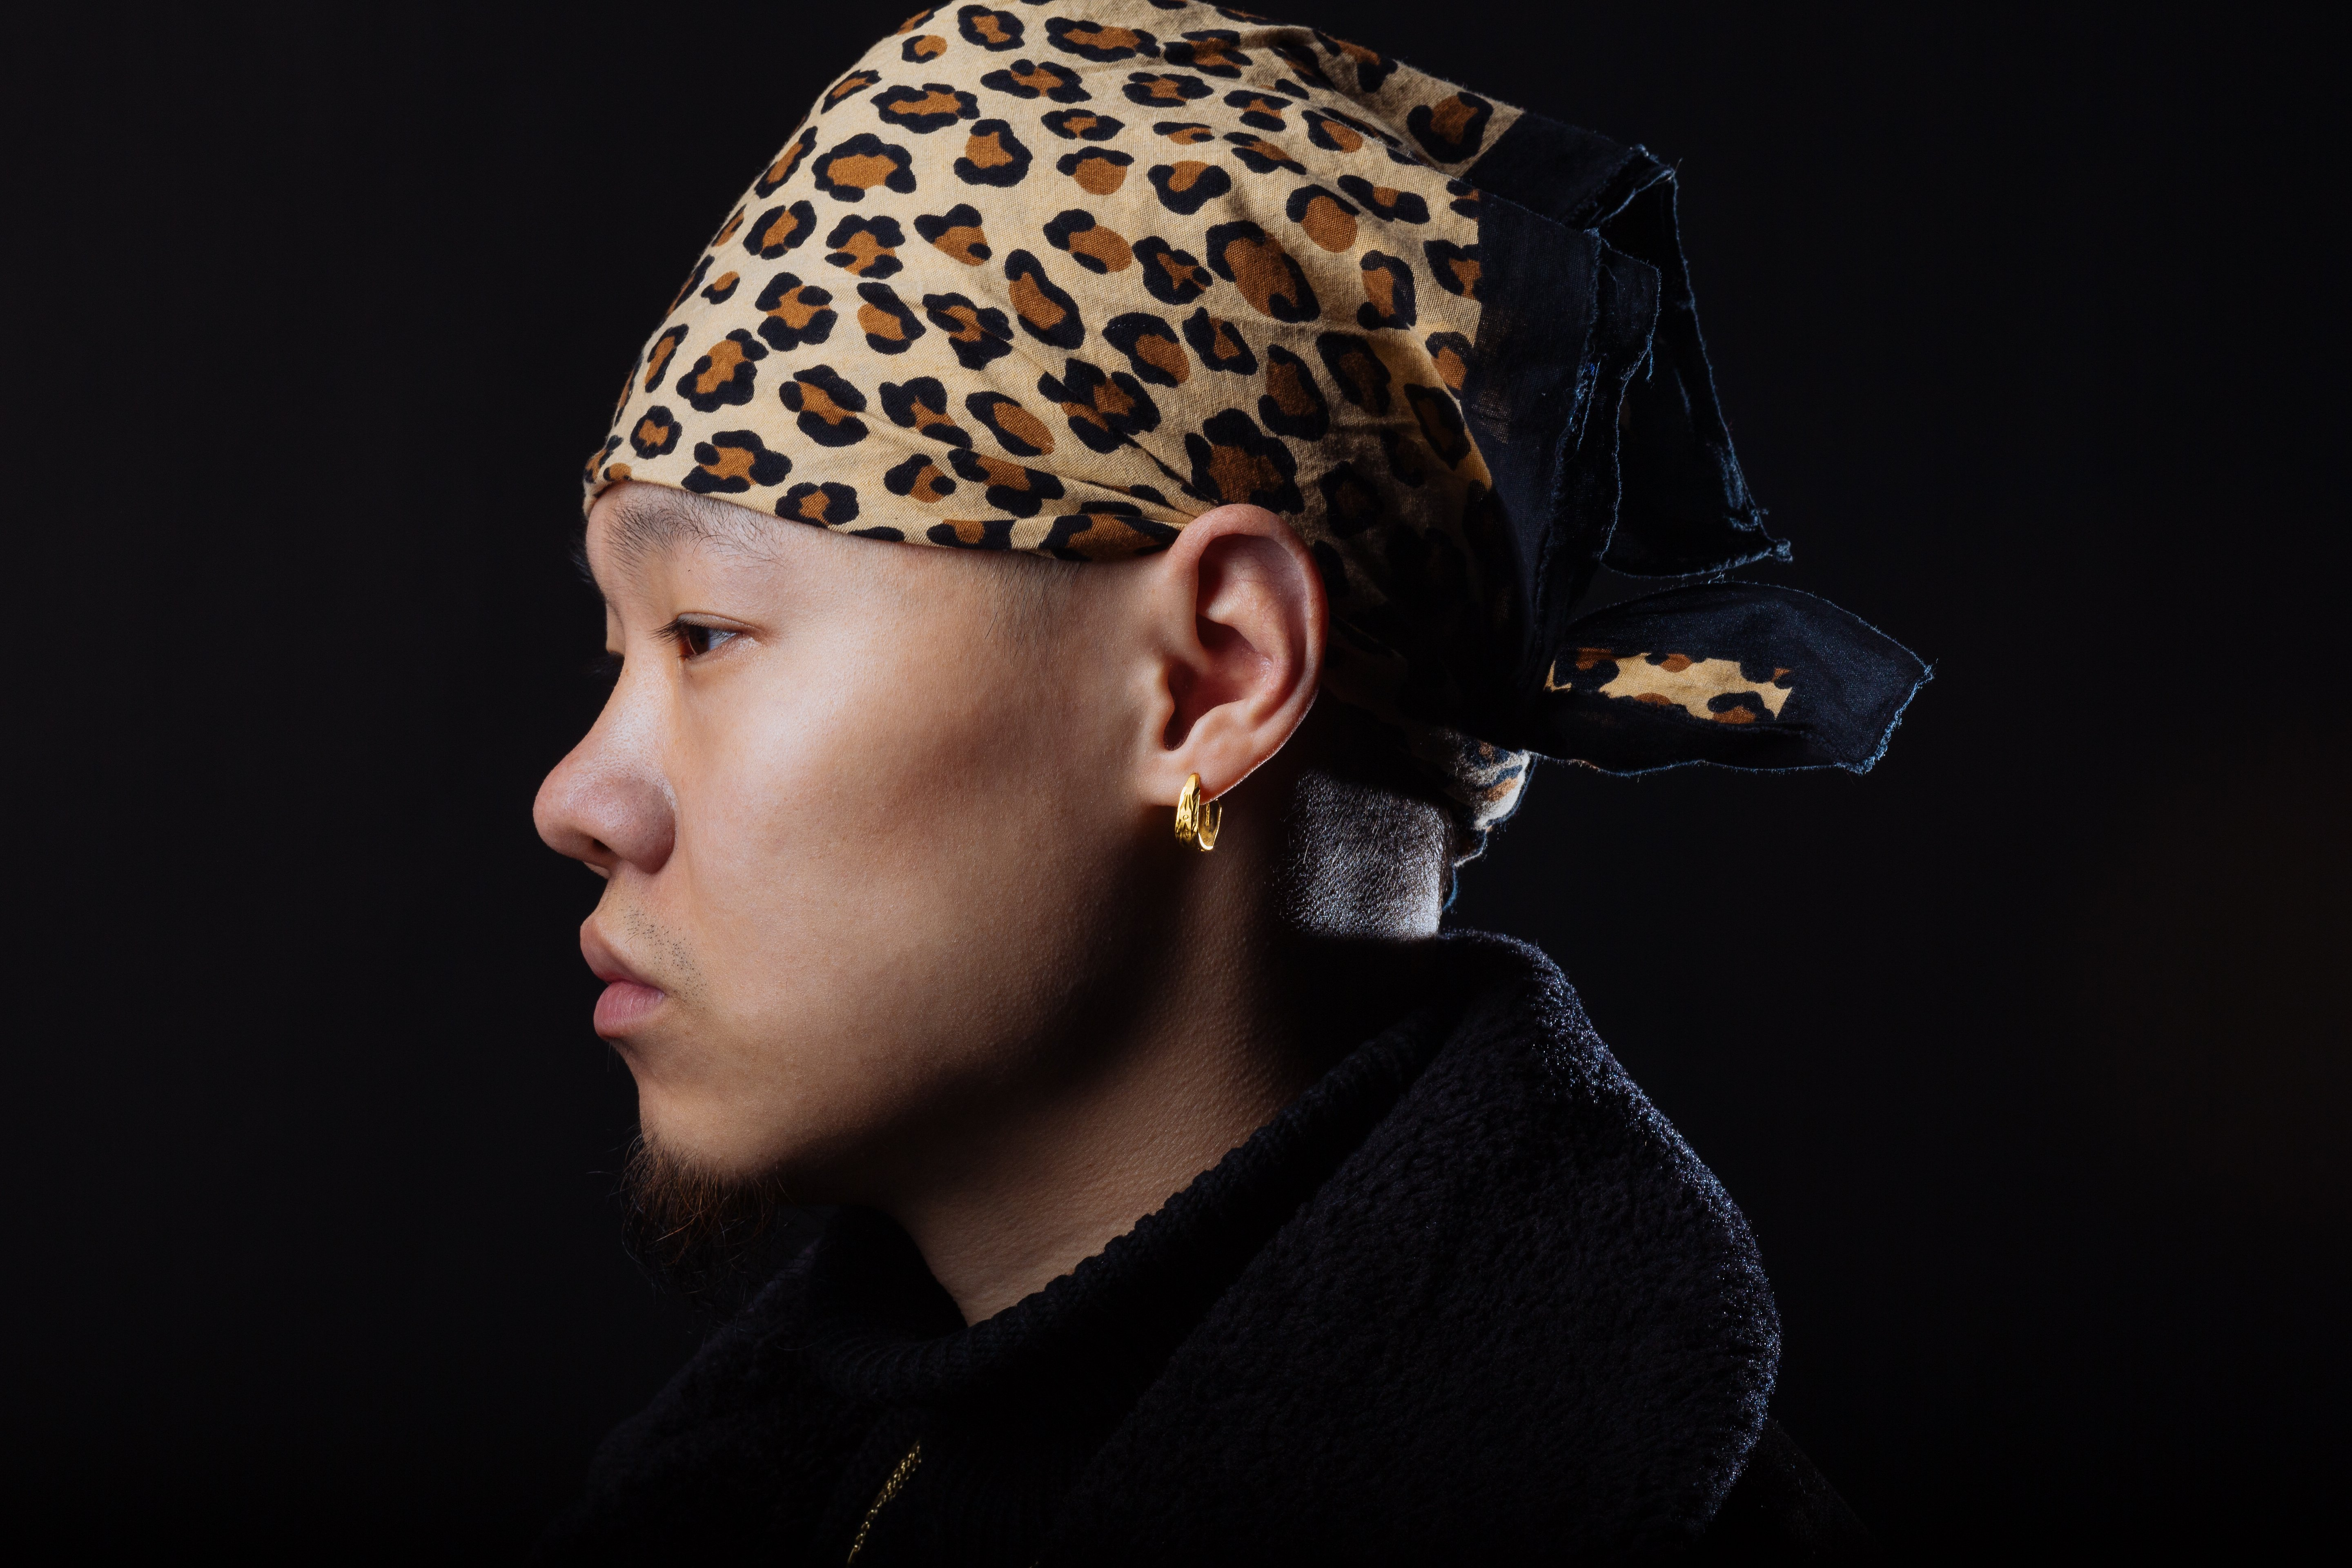 Q&A with Bohan Phoenix about Hip-Hop & Cultural Expression in China